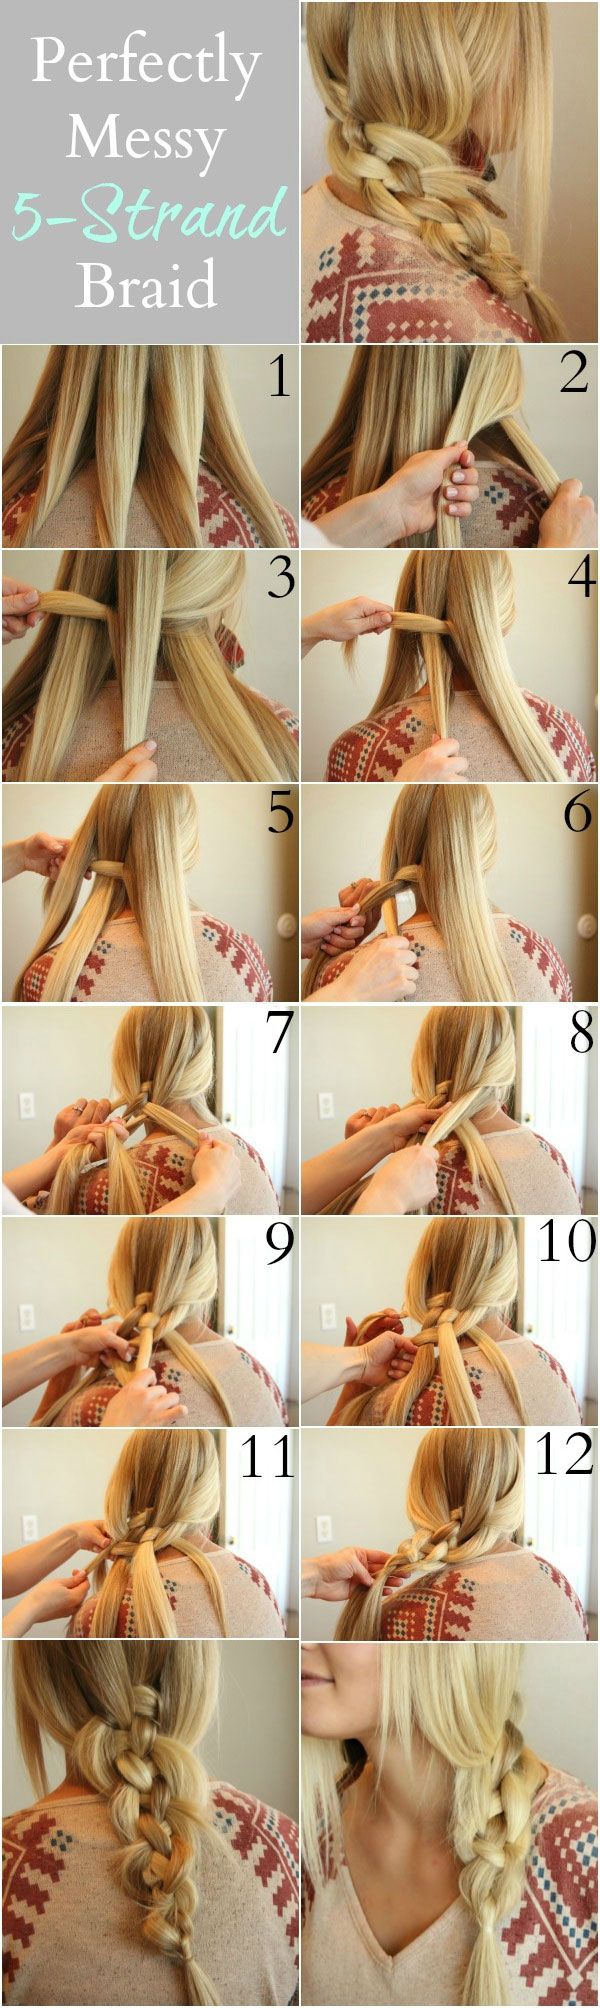 Groovy Easy Five Strand Braid Tutorial Step By Step Hairstyles Weekly Hairstyle Inspiration Daily Dogsangcom